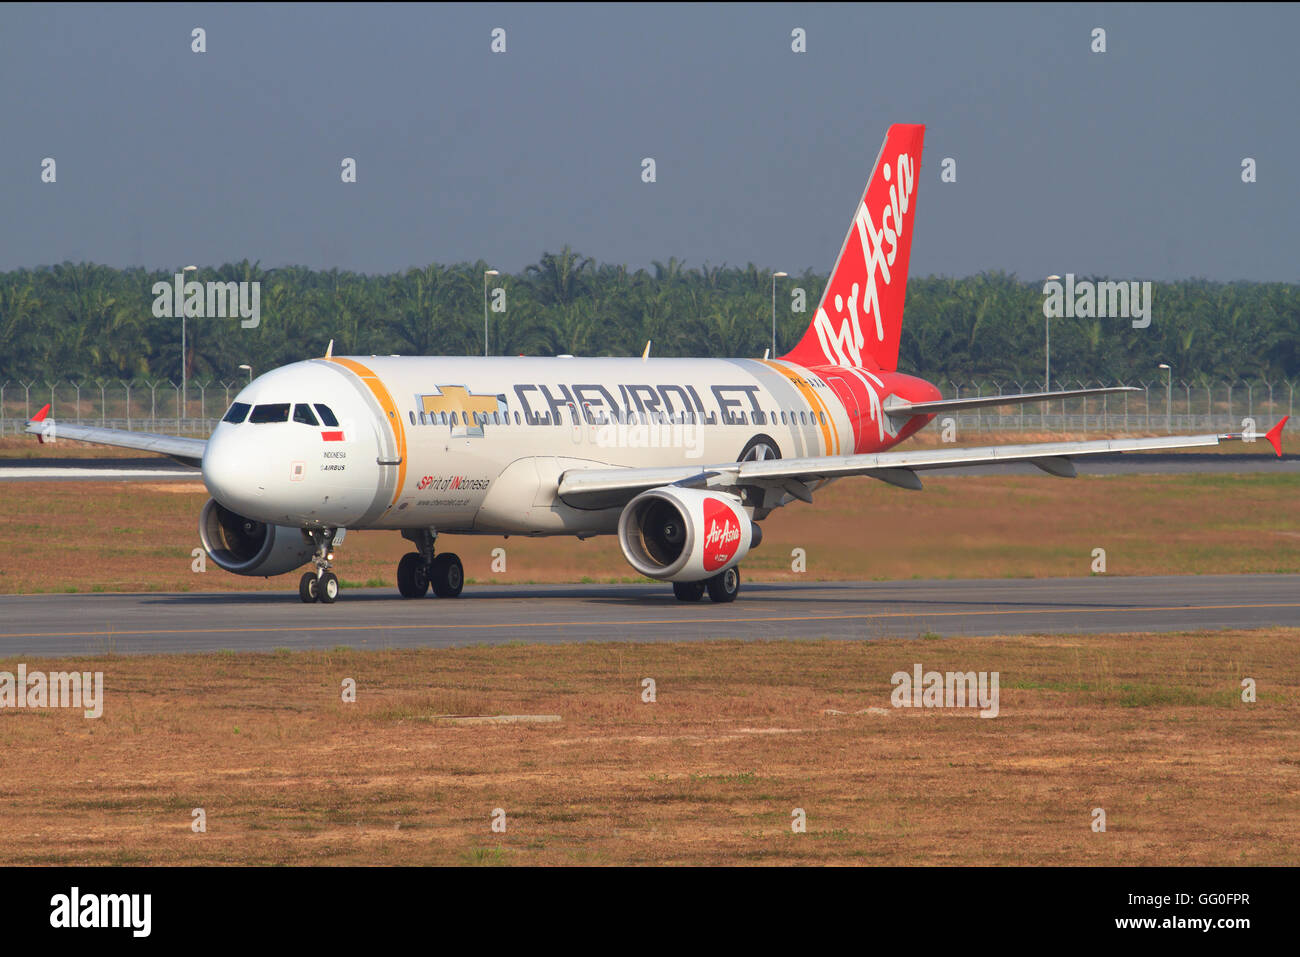 Kuala Lumpur/Malaysia Februar 10, 2015: Airbus A320 from Air Asia Airliners landing with special 'chevrolet' - Stock Image